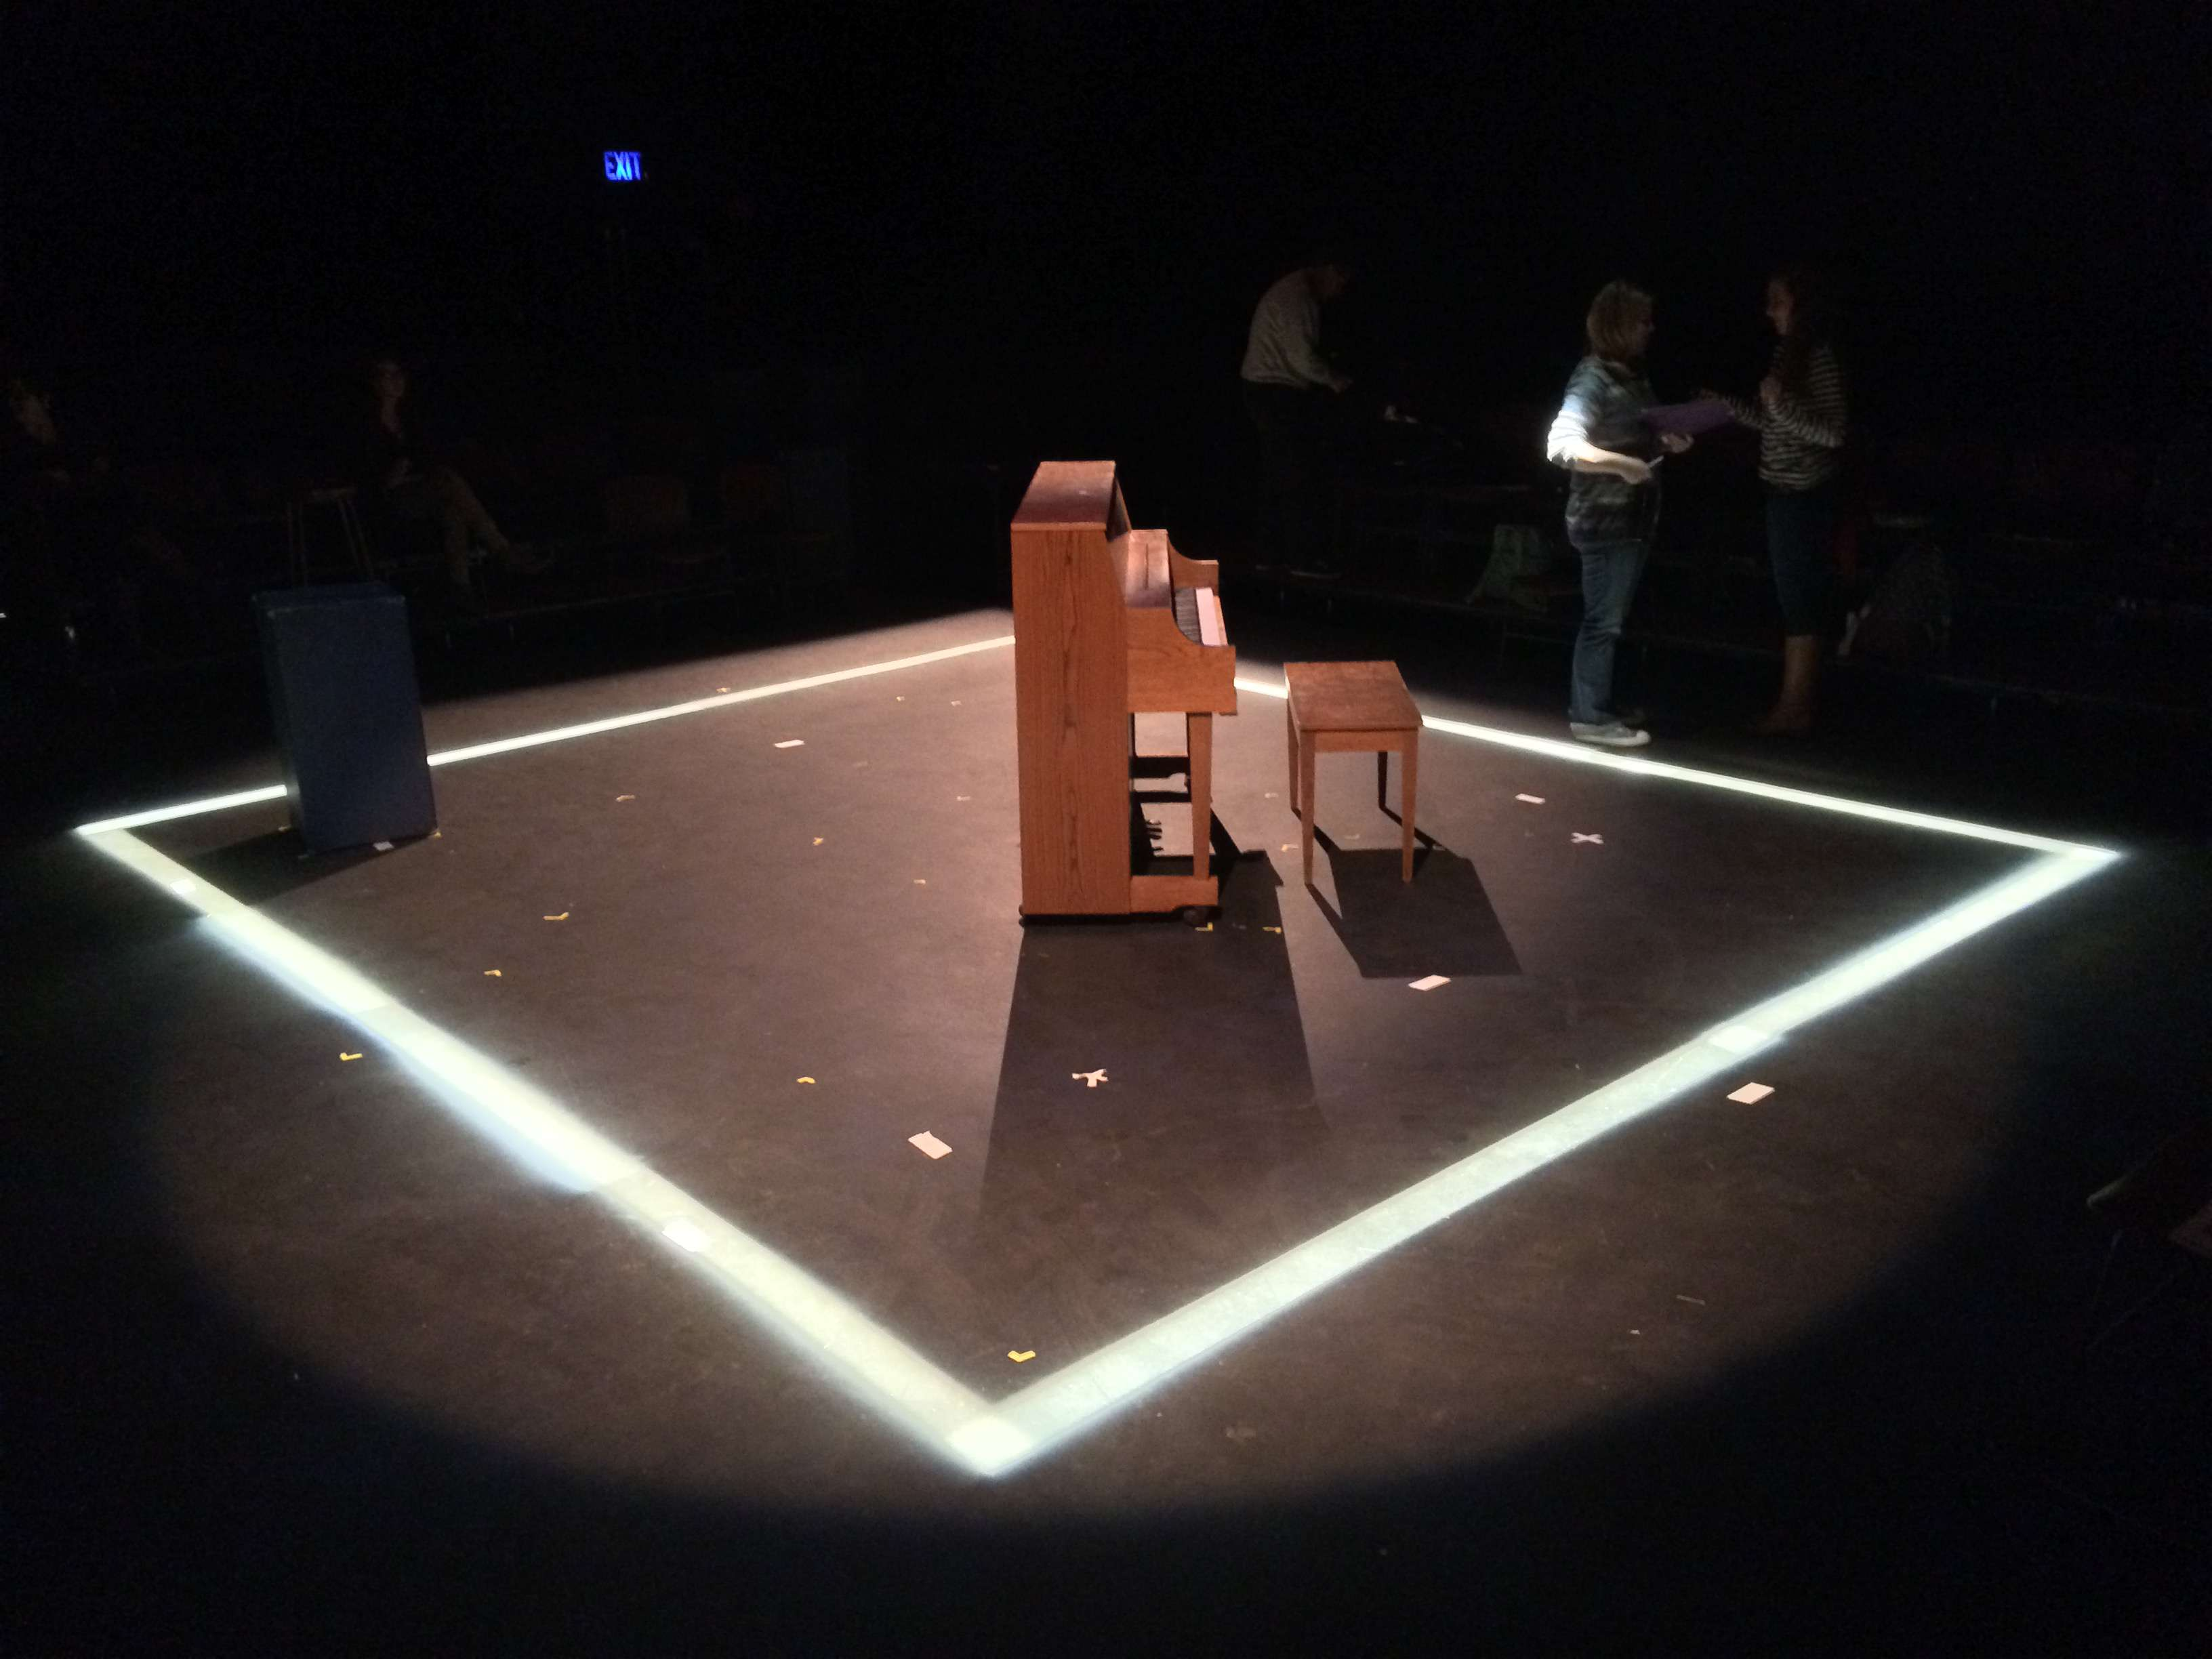 A scene from the show, featuring a distinct lighting design